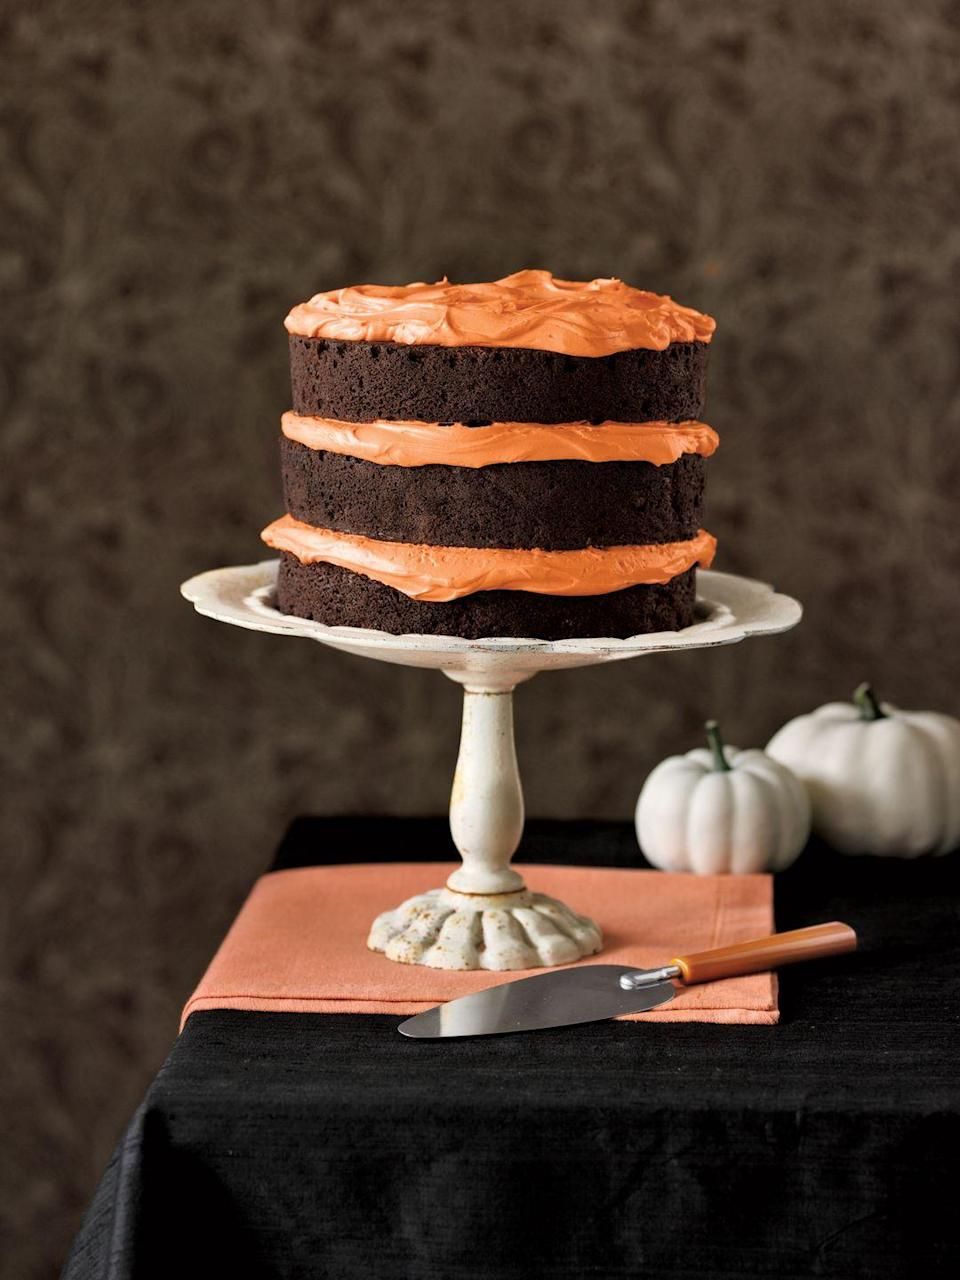 """<p>All dressed up in Halloween colors.</p><p>Get the recipe from <a href=""""https://www.delish.com/cooking/recipe-ideas/recipes/a26273/chocolate-pumpkin-cake-cupcakes-3922/"""" rel=""""nofollow noopener"""" target=""""_blank"""" data-ylk=""""slk:Delish"""" class=""""link rapid-noclick-resp"""">Delish</a>. </p>"""